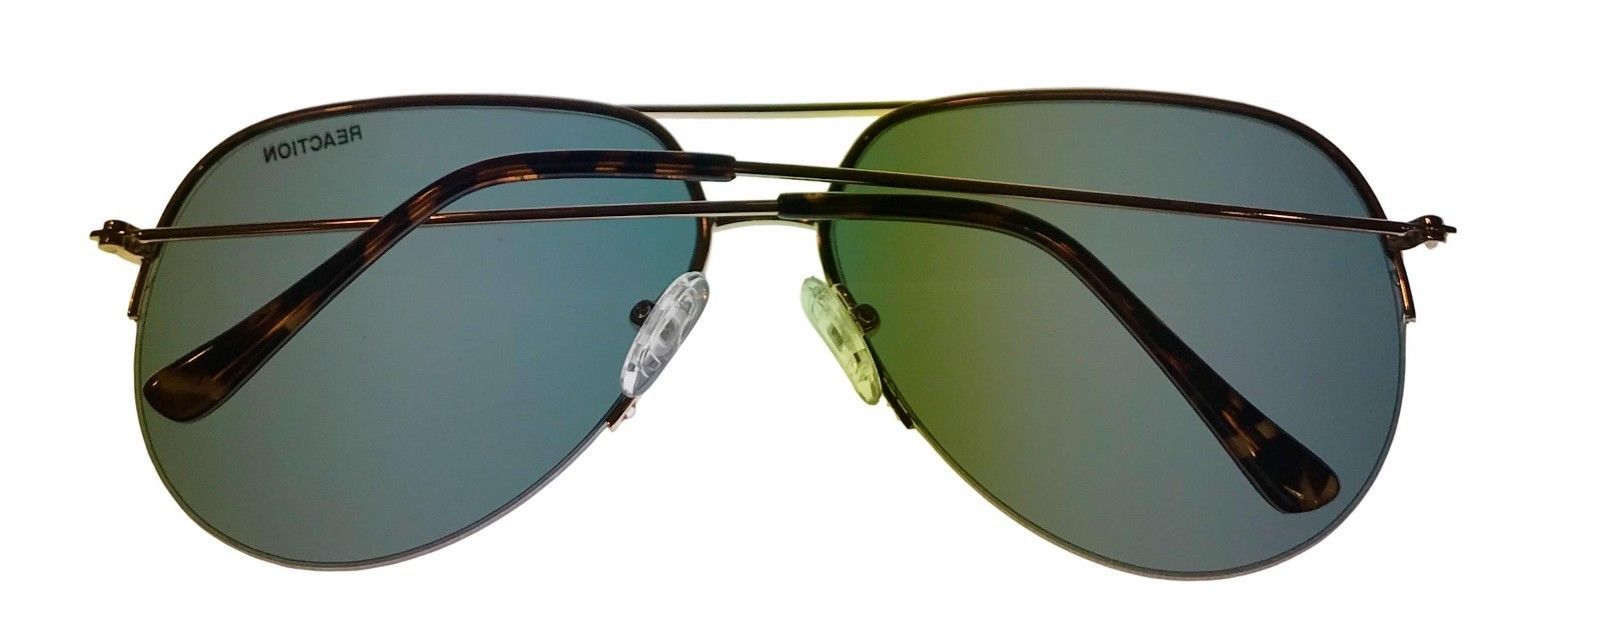 Kenneth Cole Reaction Mens Sunglass Gold Rimless Aviator, KC1307 32N image 5